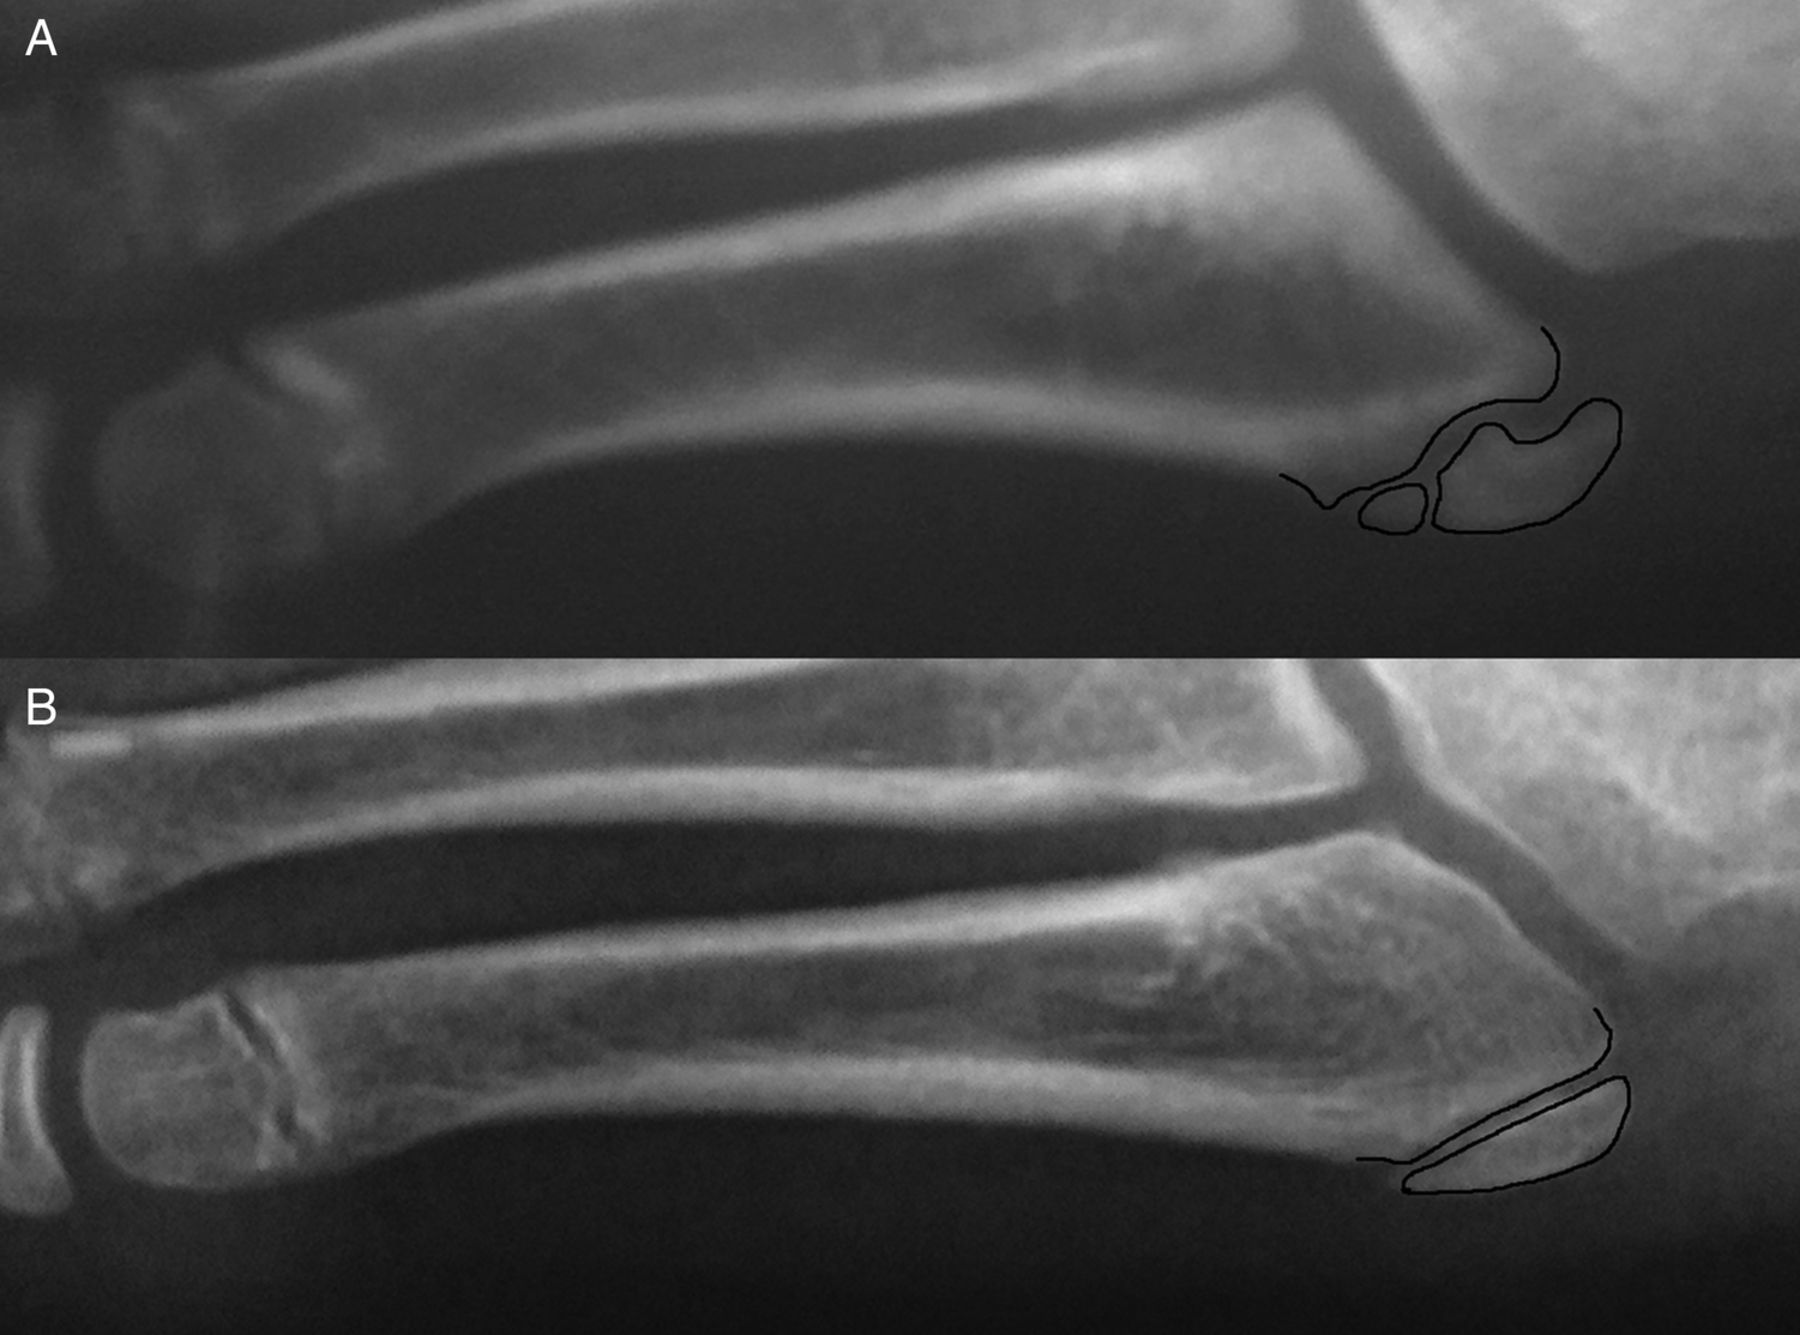 traction apophysitis of the fifth metatarsal base in a